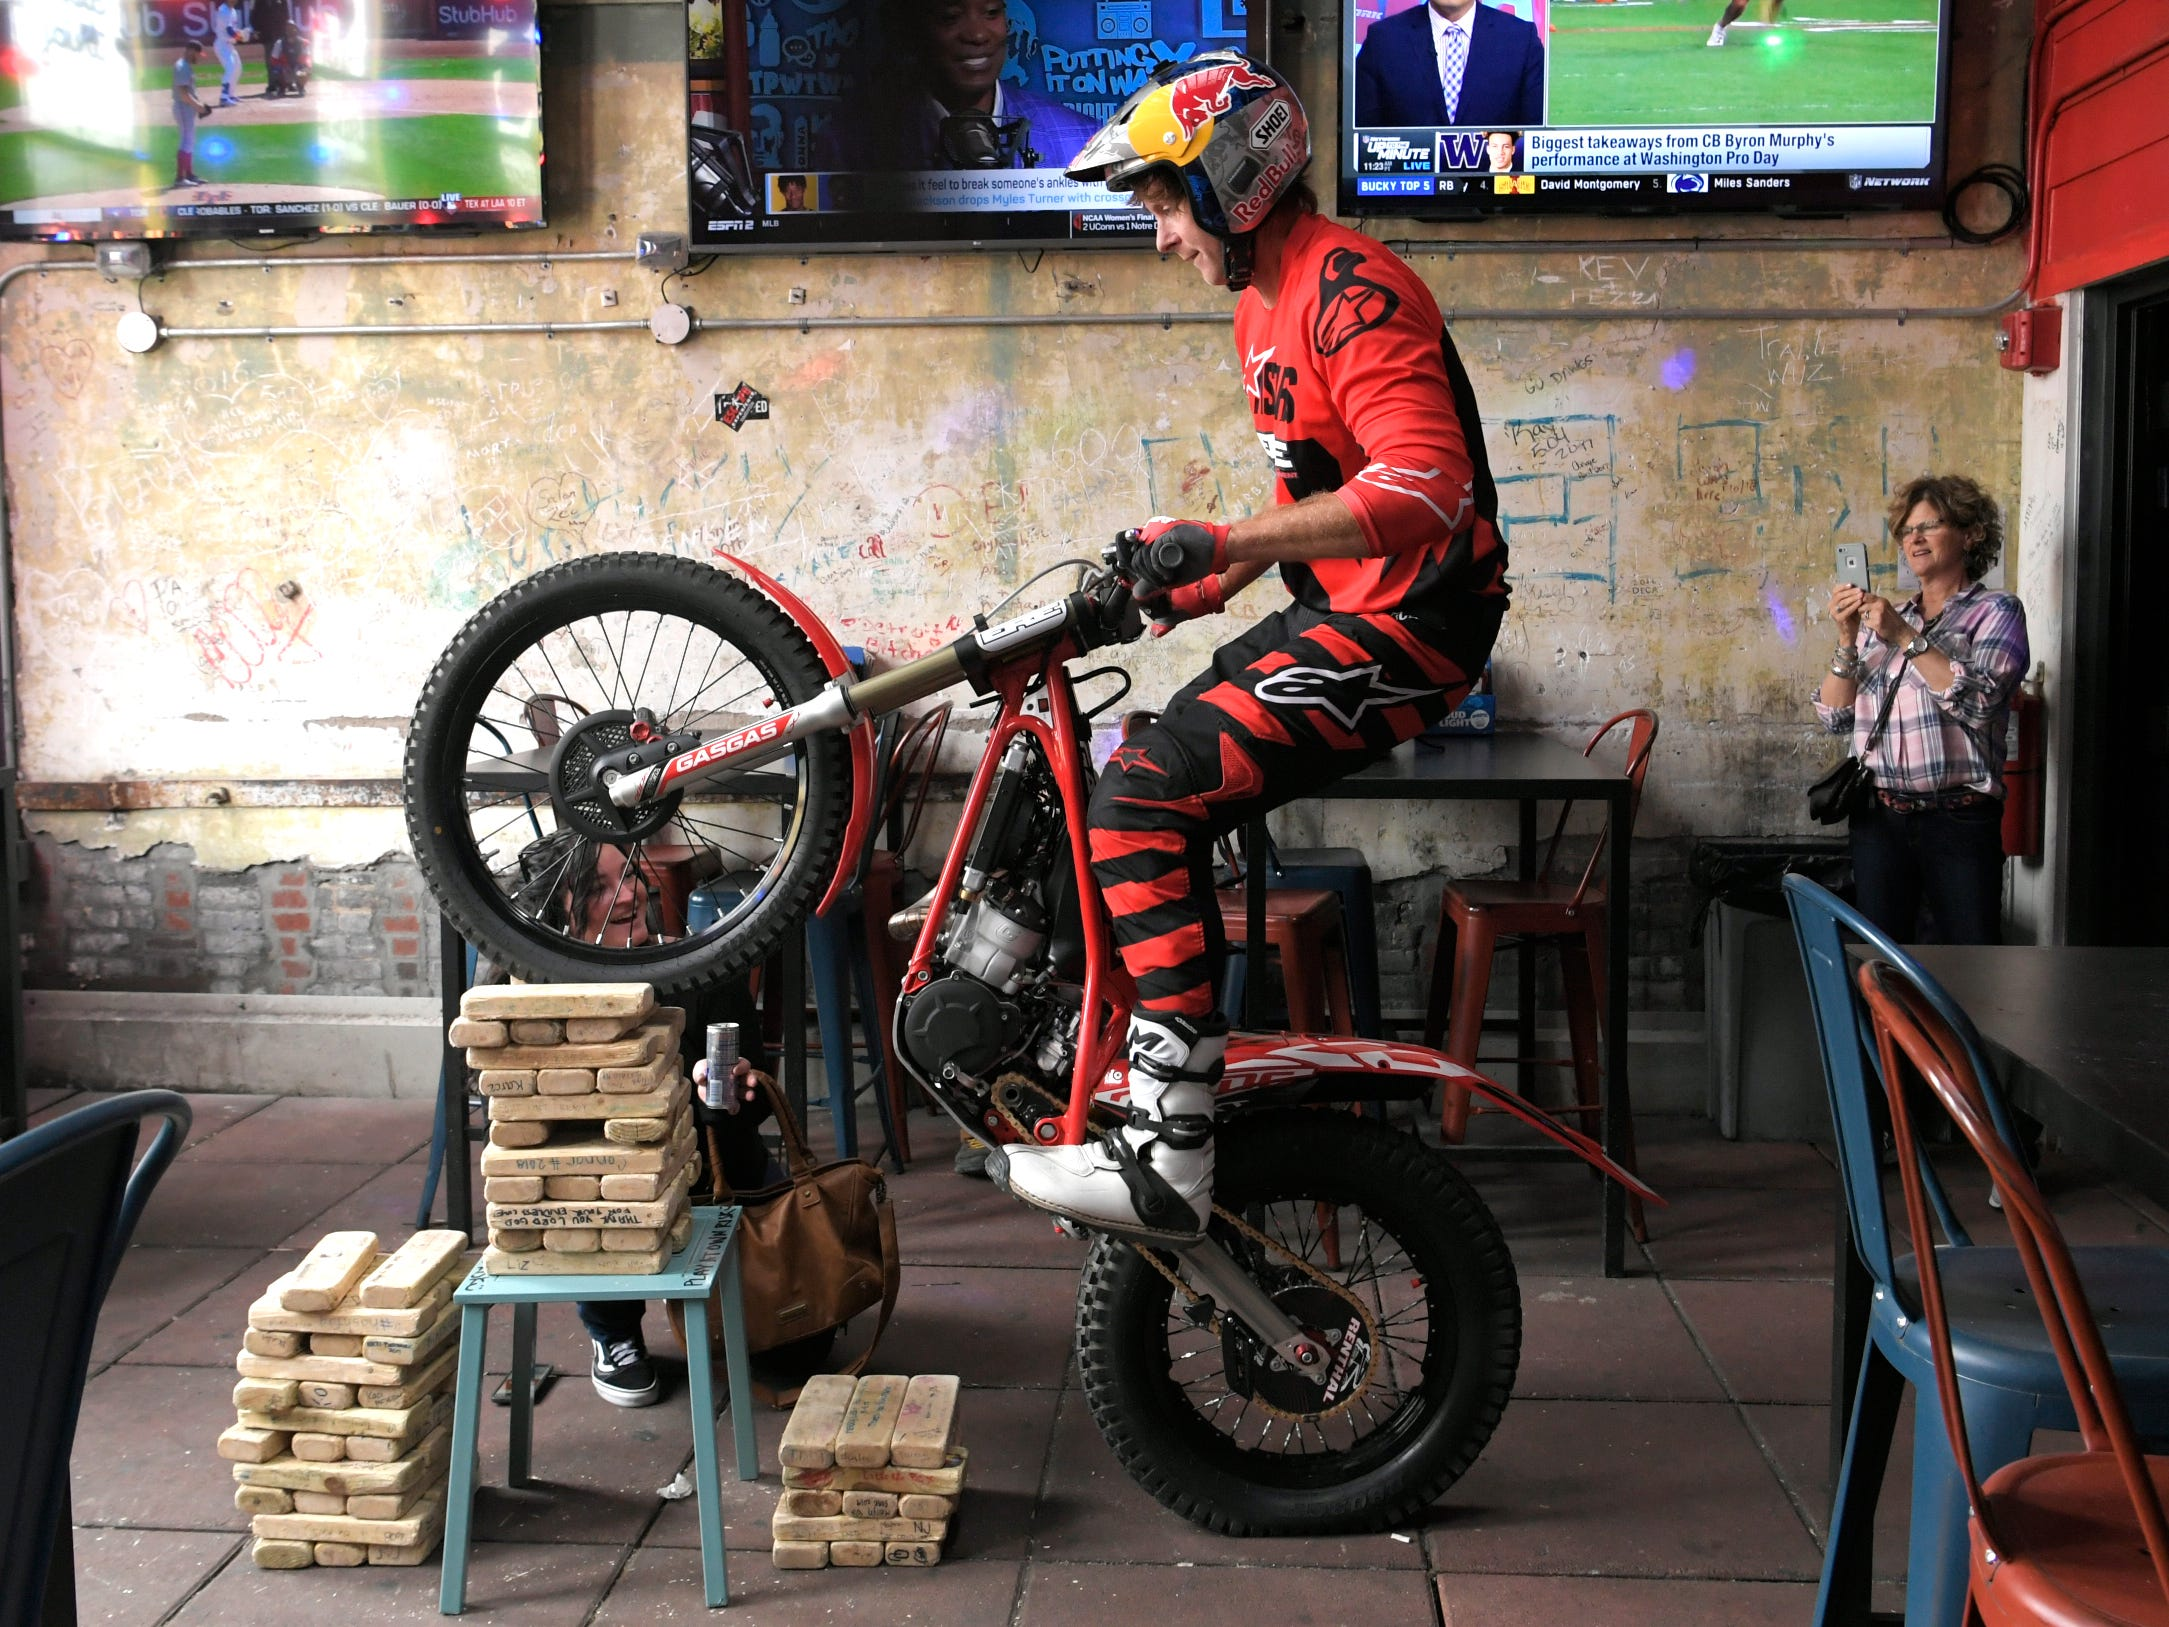 Trial motorcyclist Geoff Aaron performs stunts in Nashville's downtown Broadway bar on Thursday, April 4, 2019. The trials and endurocross legend is in town for the Motocross-Supercross event